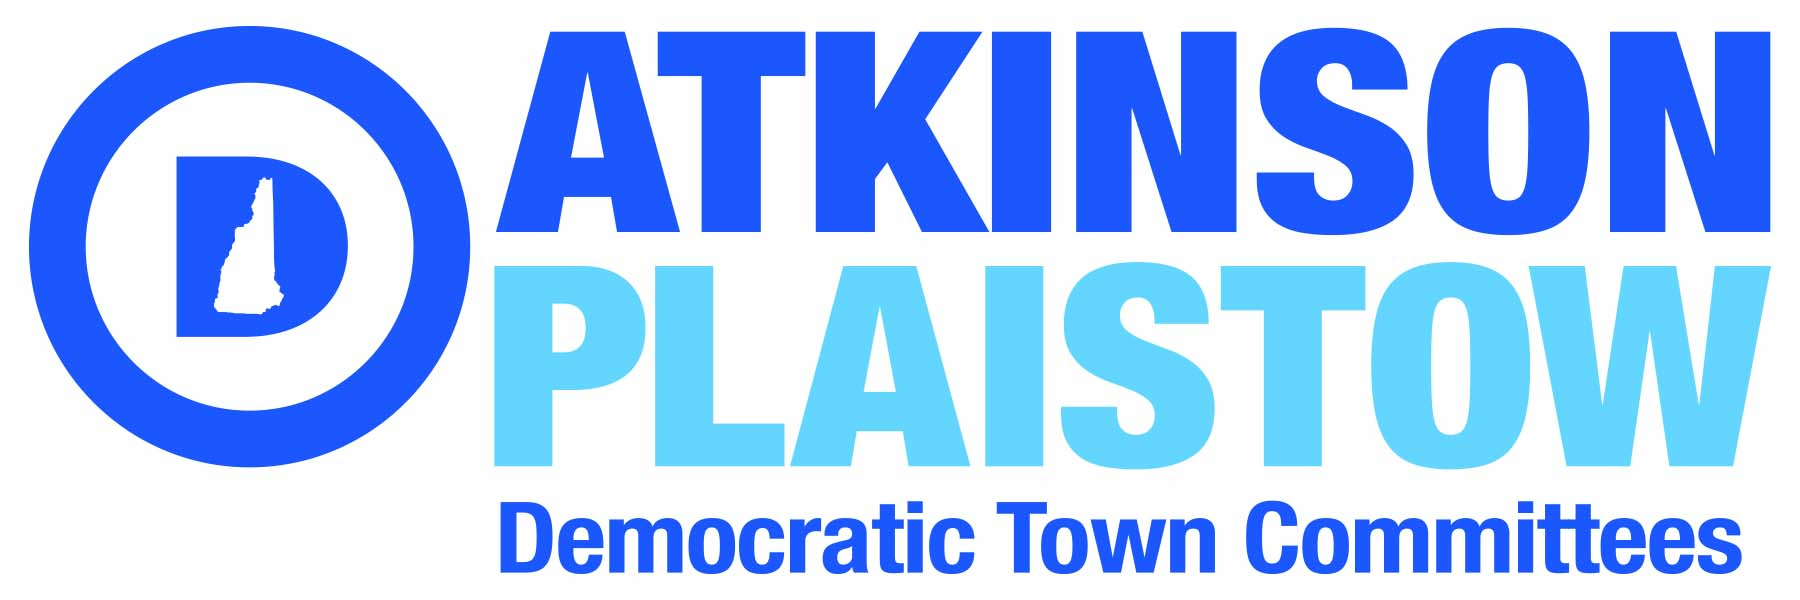 Atkinson/Plaistow Democratic Town Committees